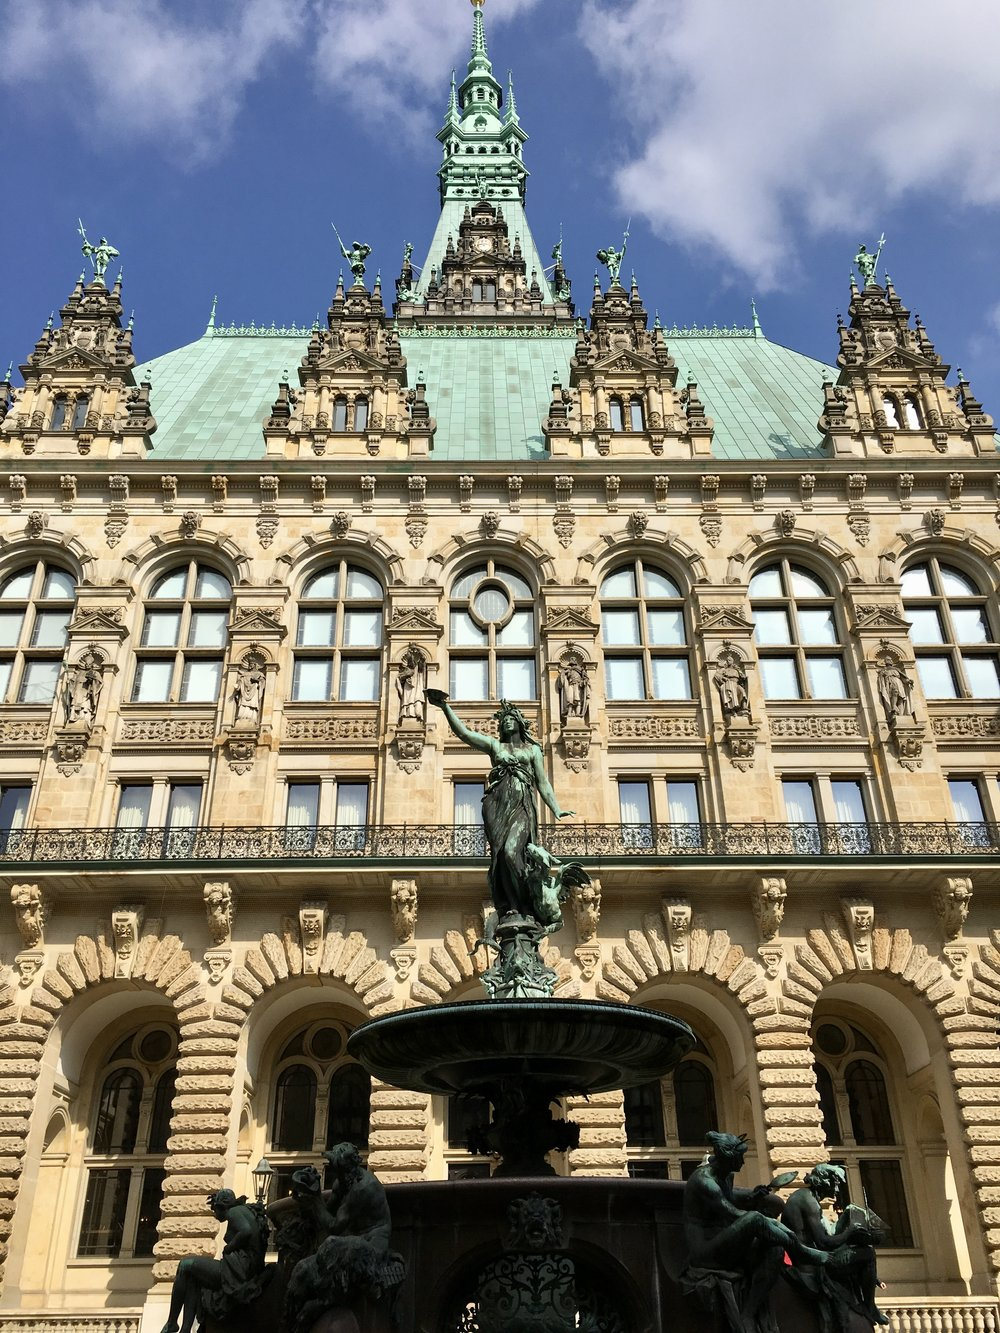 The impressive Rathaus, or City Hall